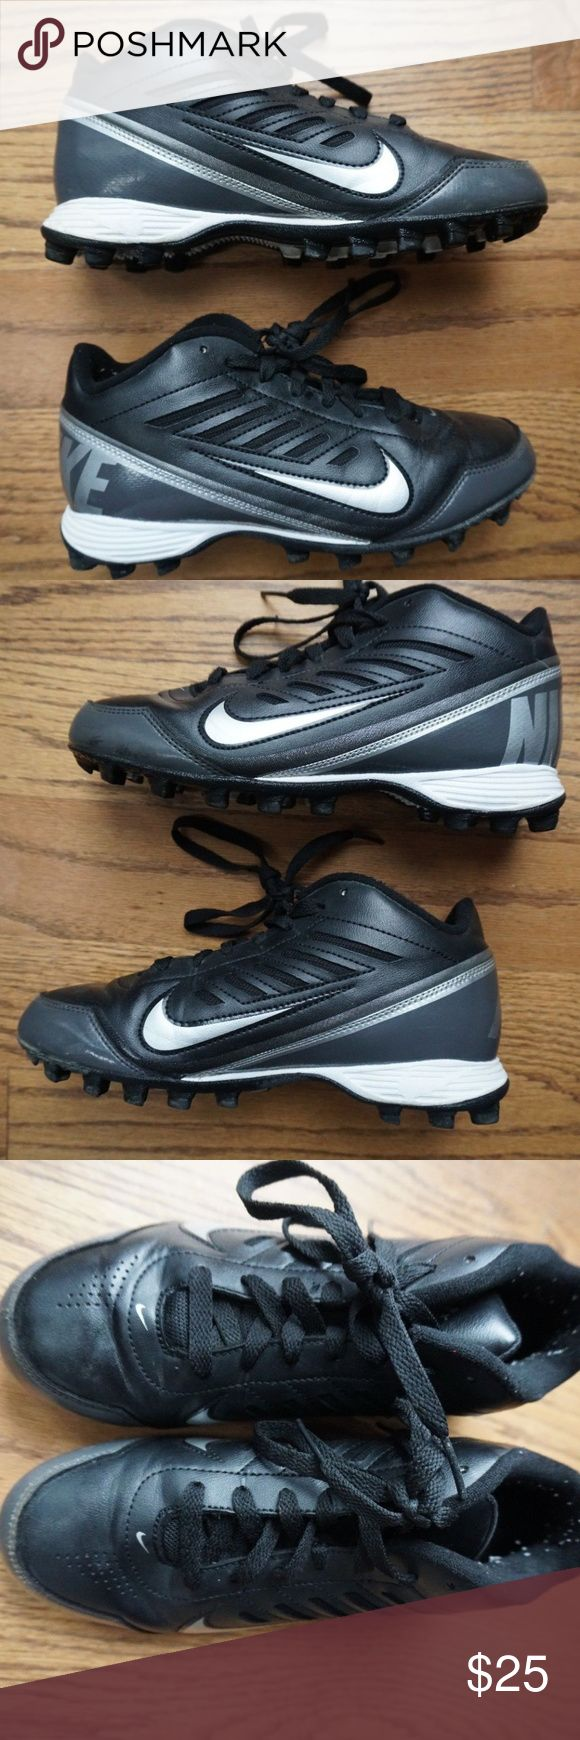 NIKE Football Cleats Size 5Y NIKE Football Cleats Land Shark Kids Black and Silver Football Cleats Size 5Y Very Good Condition! D18 Nike Shoes Sneakers